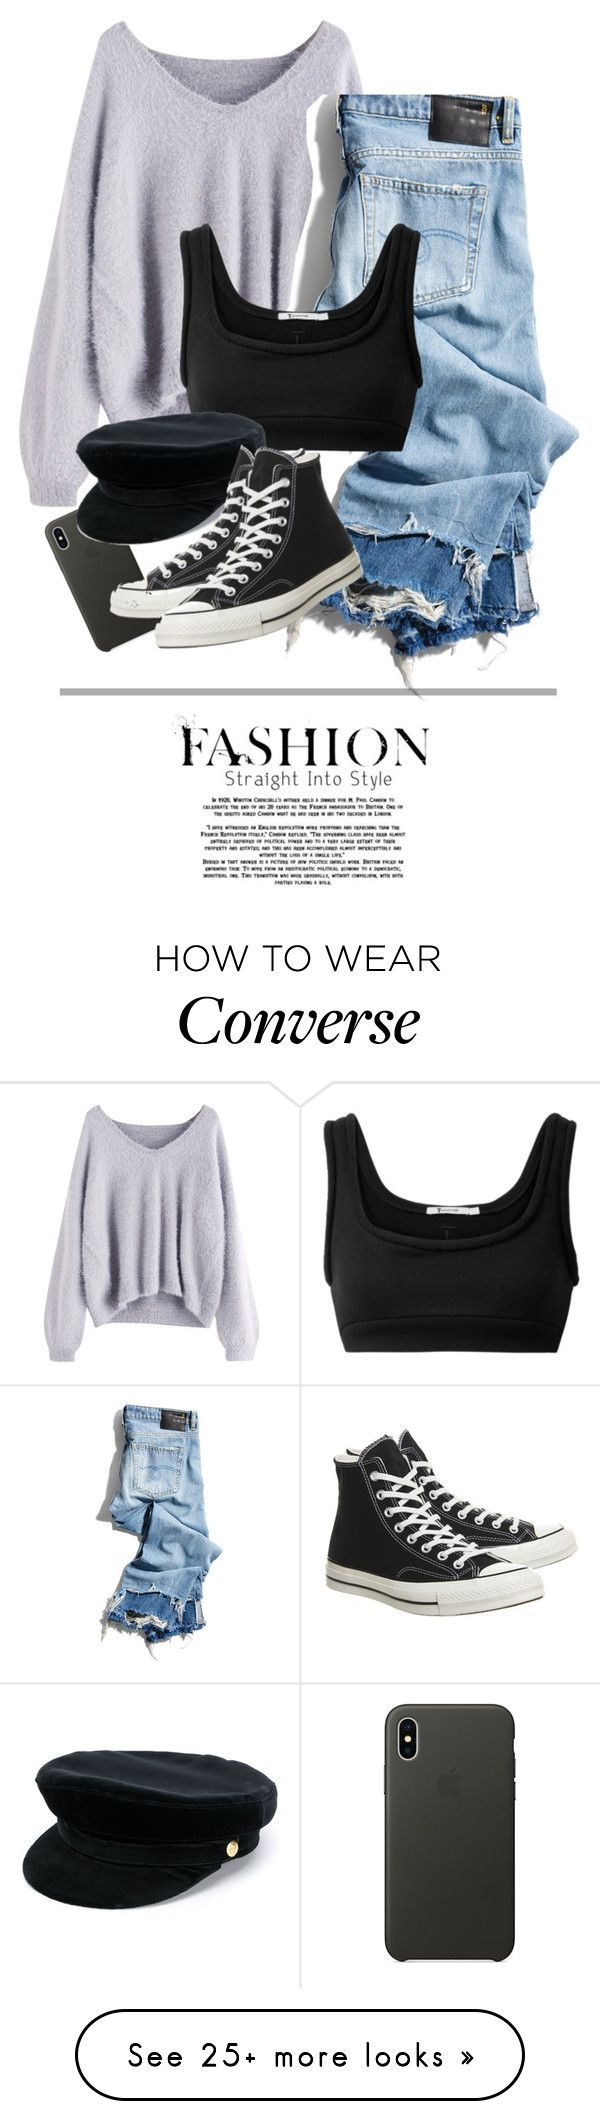 """*"" by bekahxjayne on Polyvore featuring R13, T By Alexander Wang, Apple, Manokhi and Converse"